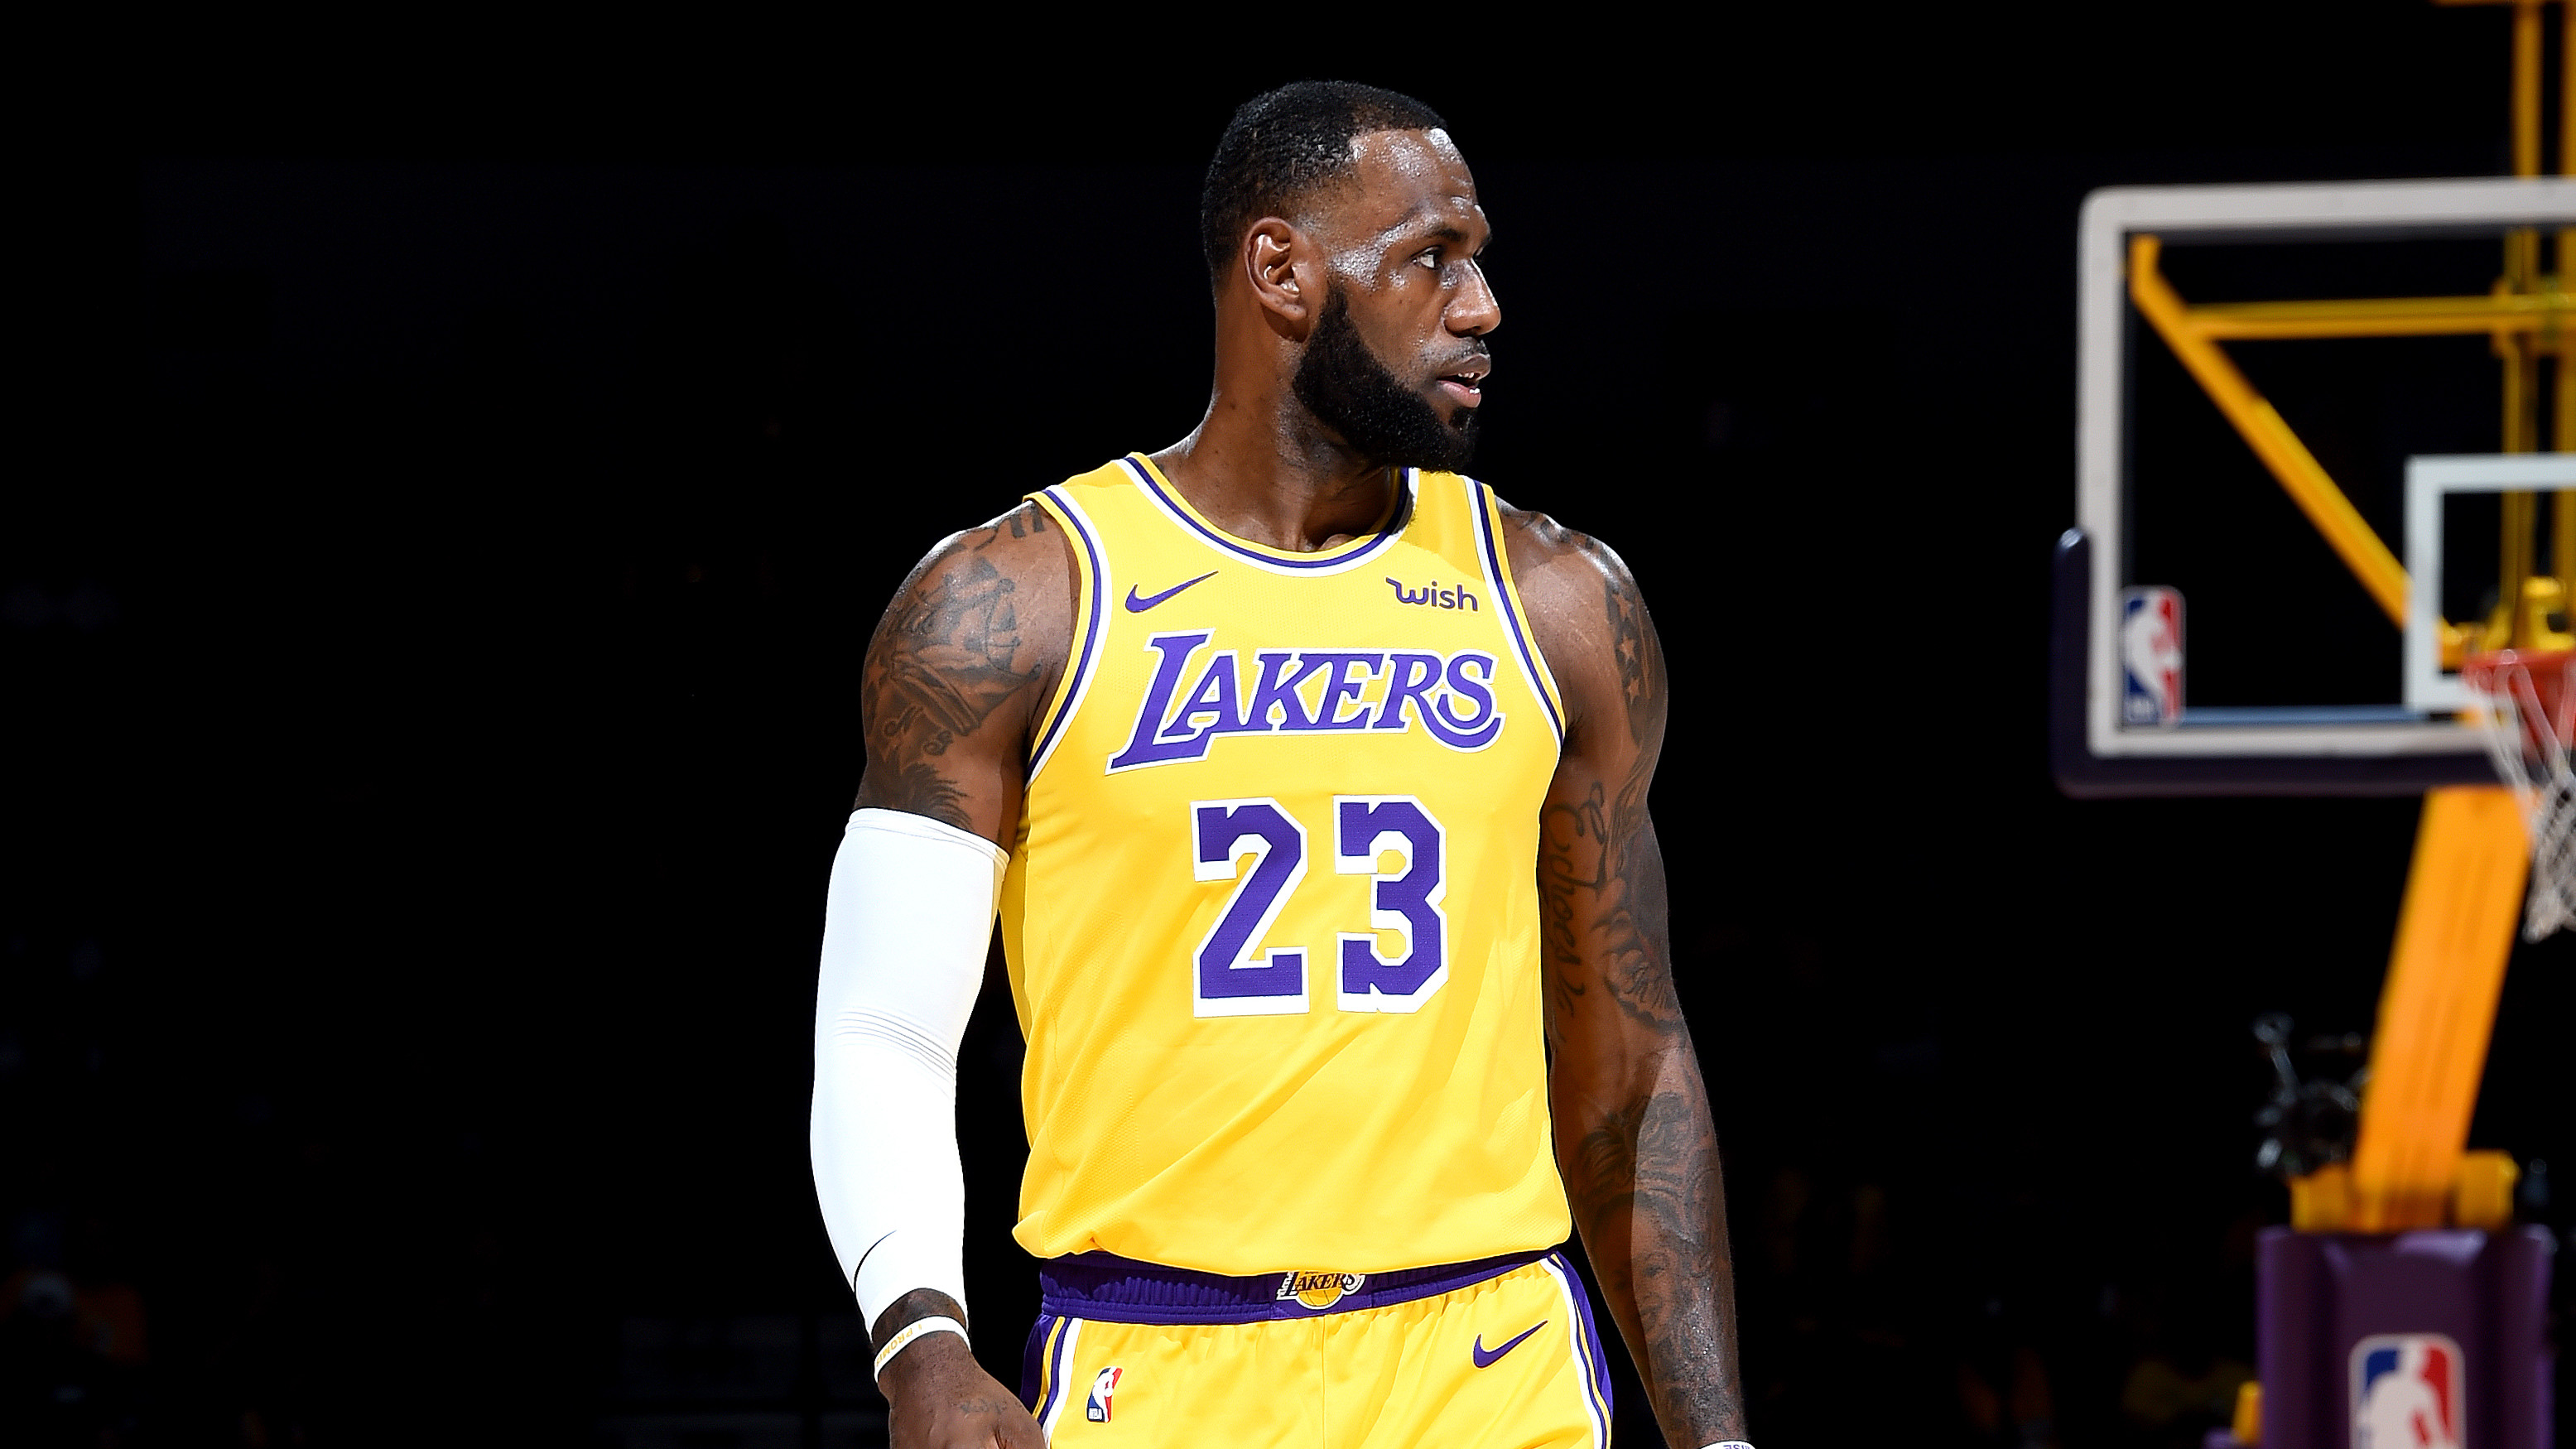 'i CommercialSole Nike Collector Believe' Lebron James WY29DHIE